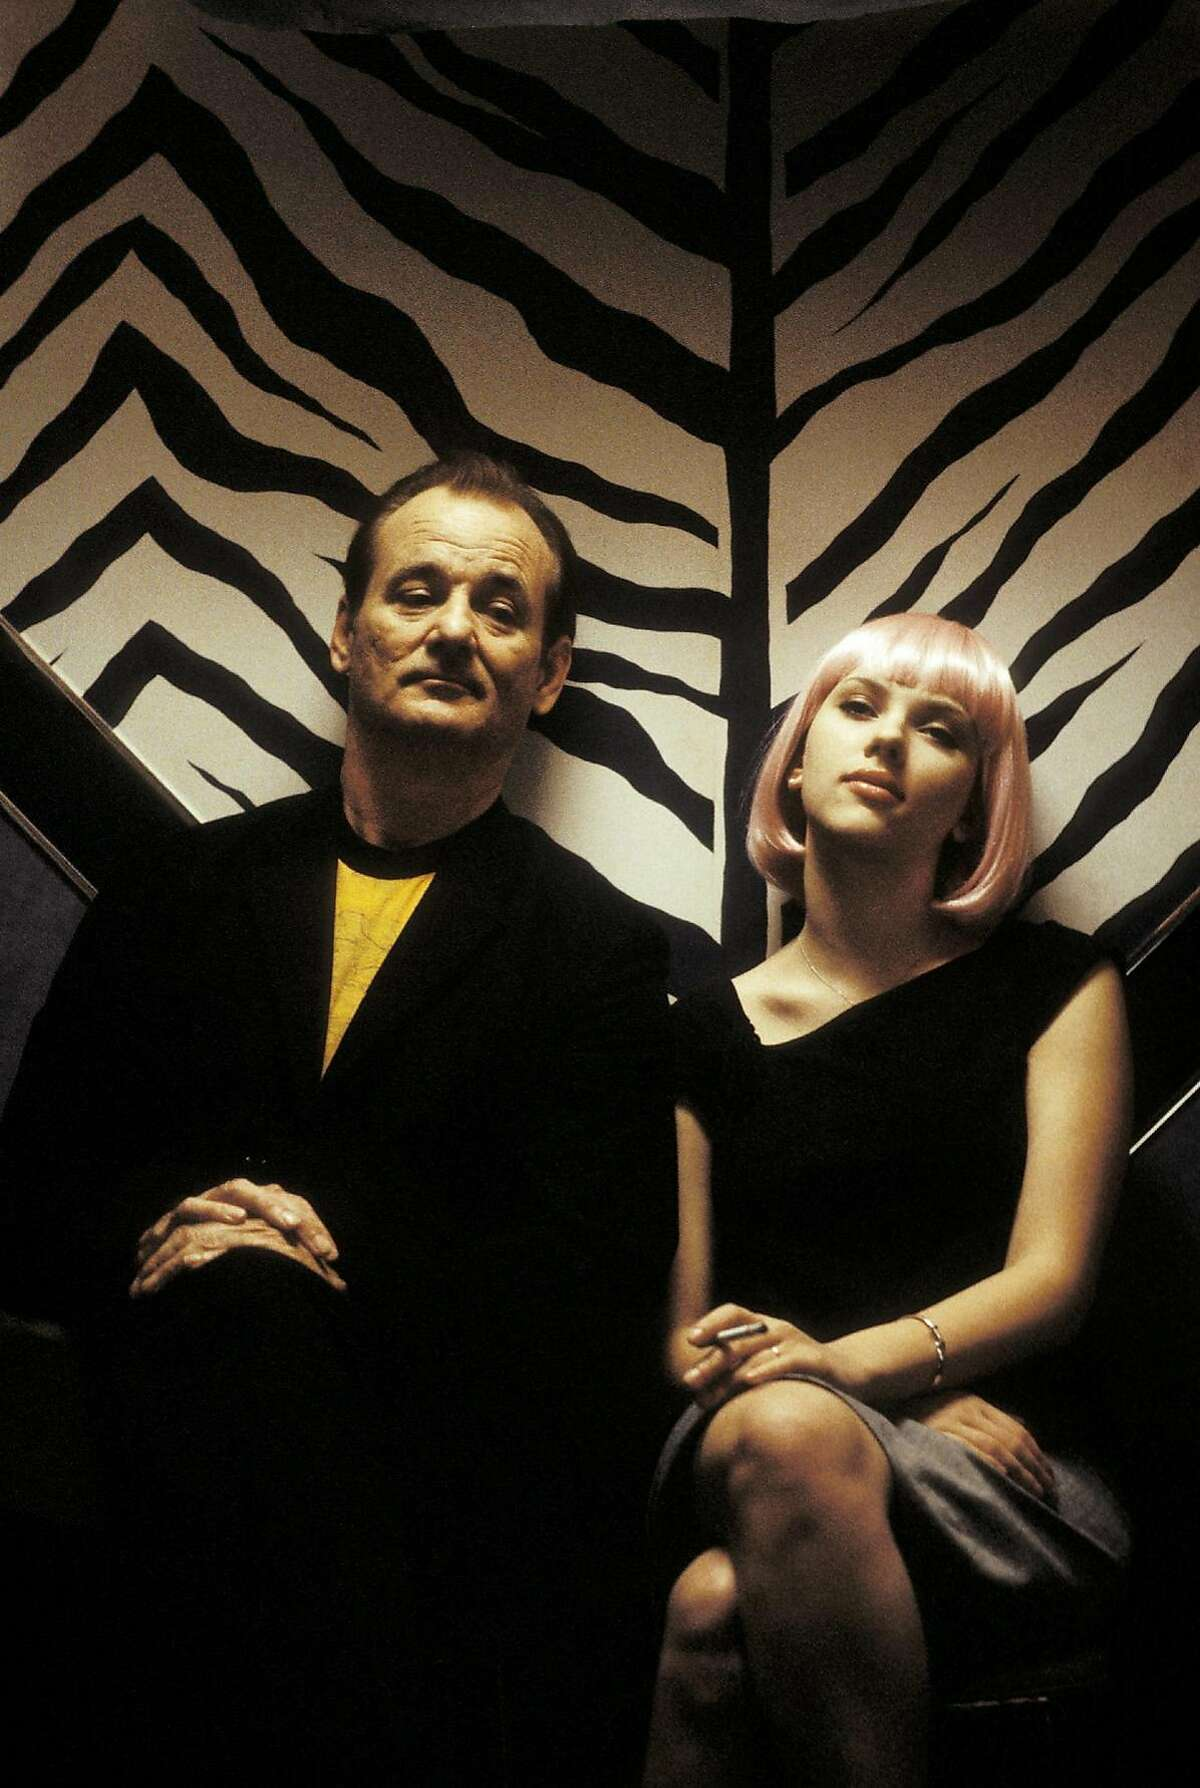 LOST12-1812 For LOST12, Datebook ; Bill Murray (left) and Scarlett Johansson (right) star in Sofia Coppola�s LOST IN TRANSLATION, a Focus Features release. Photo Credit: Yoshio Sato ; 2003 Focus Features. All Rights Reserved ; on 7/17/03 in . also ran 01/25/2004, 03/28/2004 Yoshio Sato / Focus Features Renee Zellweger (left) and Nicole Kidman worked together in the Civil War movie Cold Mountain. Director Peter Jackson (second from right) celebrates his Golden Globe win for The Lord of the Rings: The Return of the King with (from left) producer Barrie Osborne, and actors Dominic Monaghan, John Rhys-Davies and Elijah Wood. Jackson should win the Oscar. Buster Keaton: not smiling, still funny.